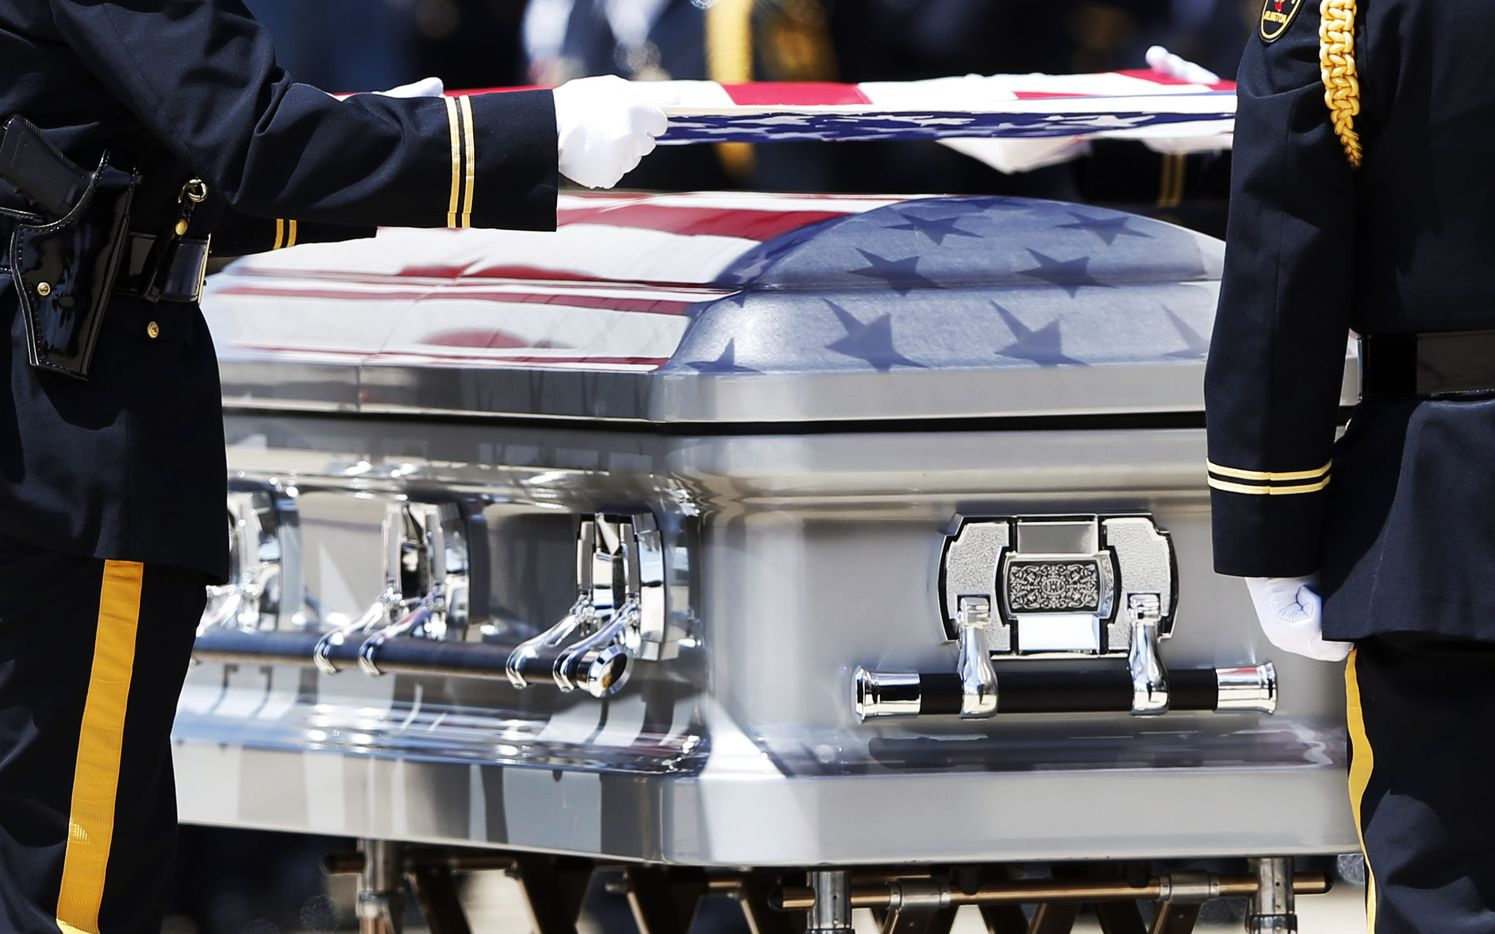 The colors of the Stars and Stripes are reflected on the coffin as the Arlington police Honor Guard prepares to fold the flag over the casket of DART Officer Brent Thompson during a memorial service at The Potter's House in Dallas on July 13, 2016. (Vernon Bryant/Staff Photographer)